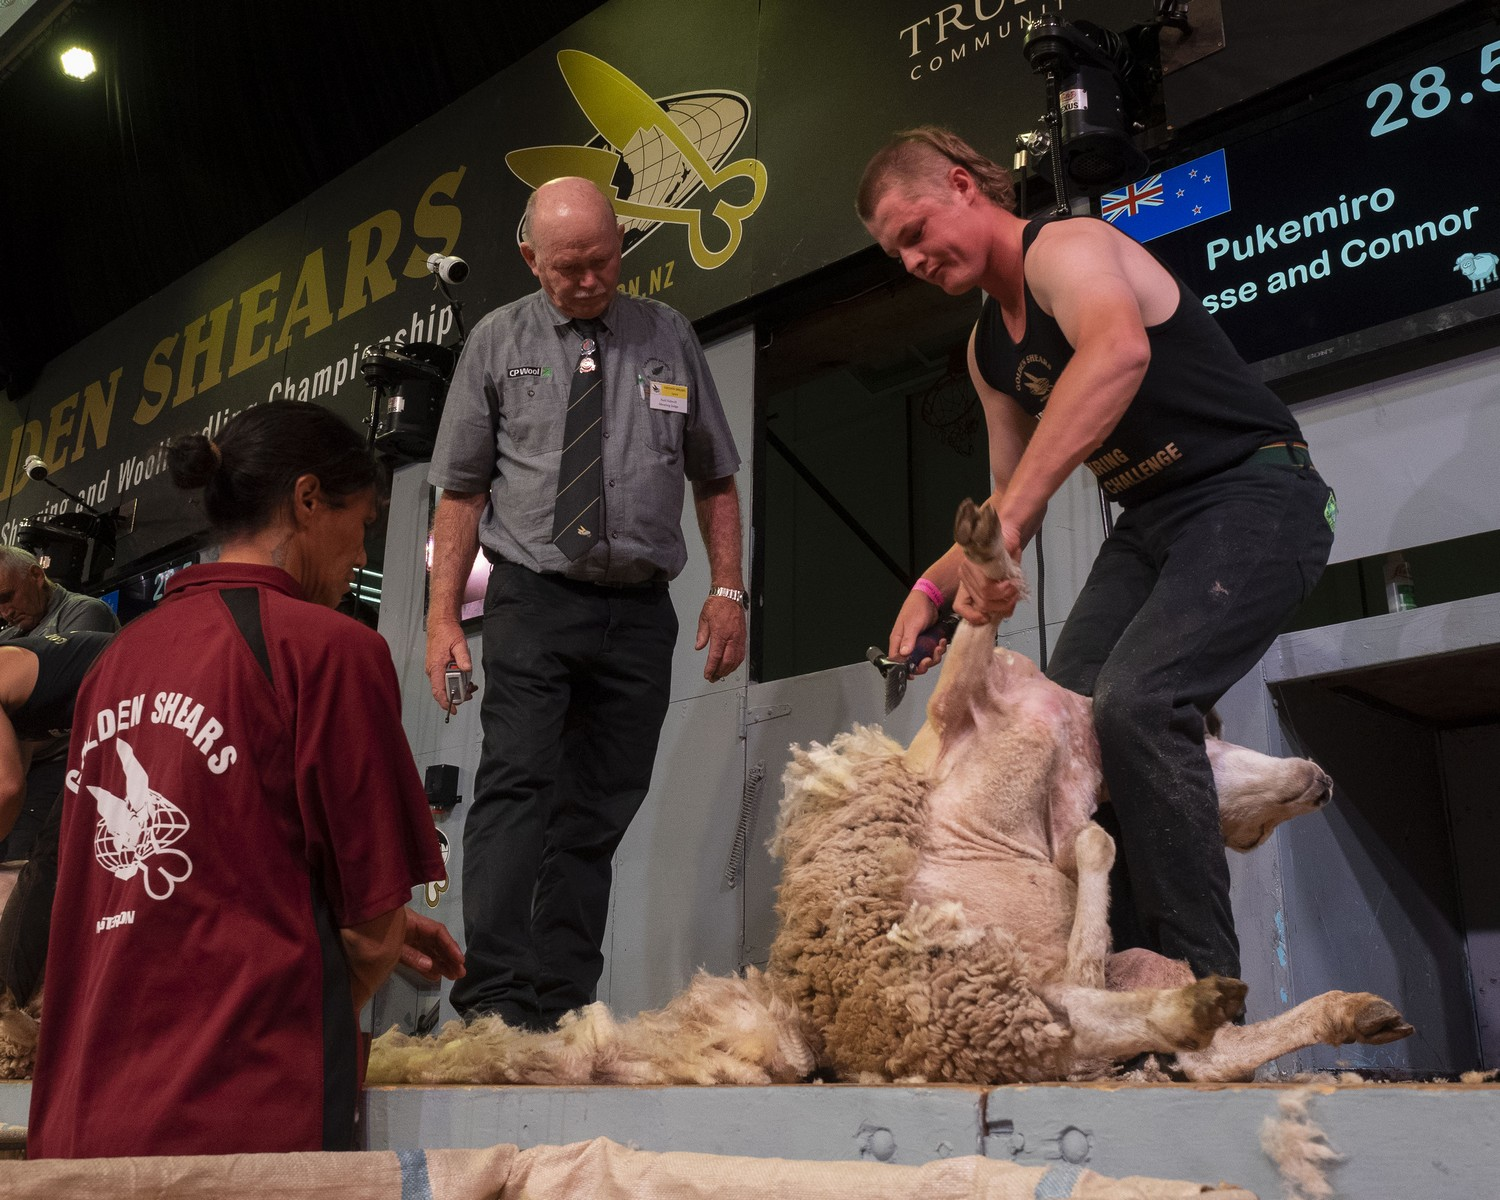 Connor McIntyre, of Pongaroa, shearing to Pukemiro Station's win in the students challenge among teams from four agricultural training courses.